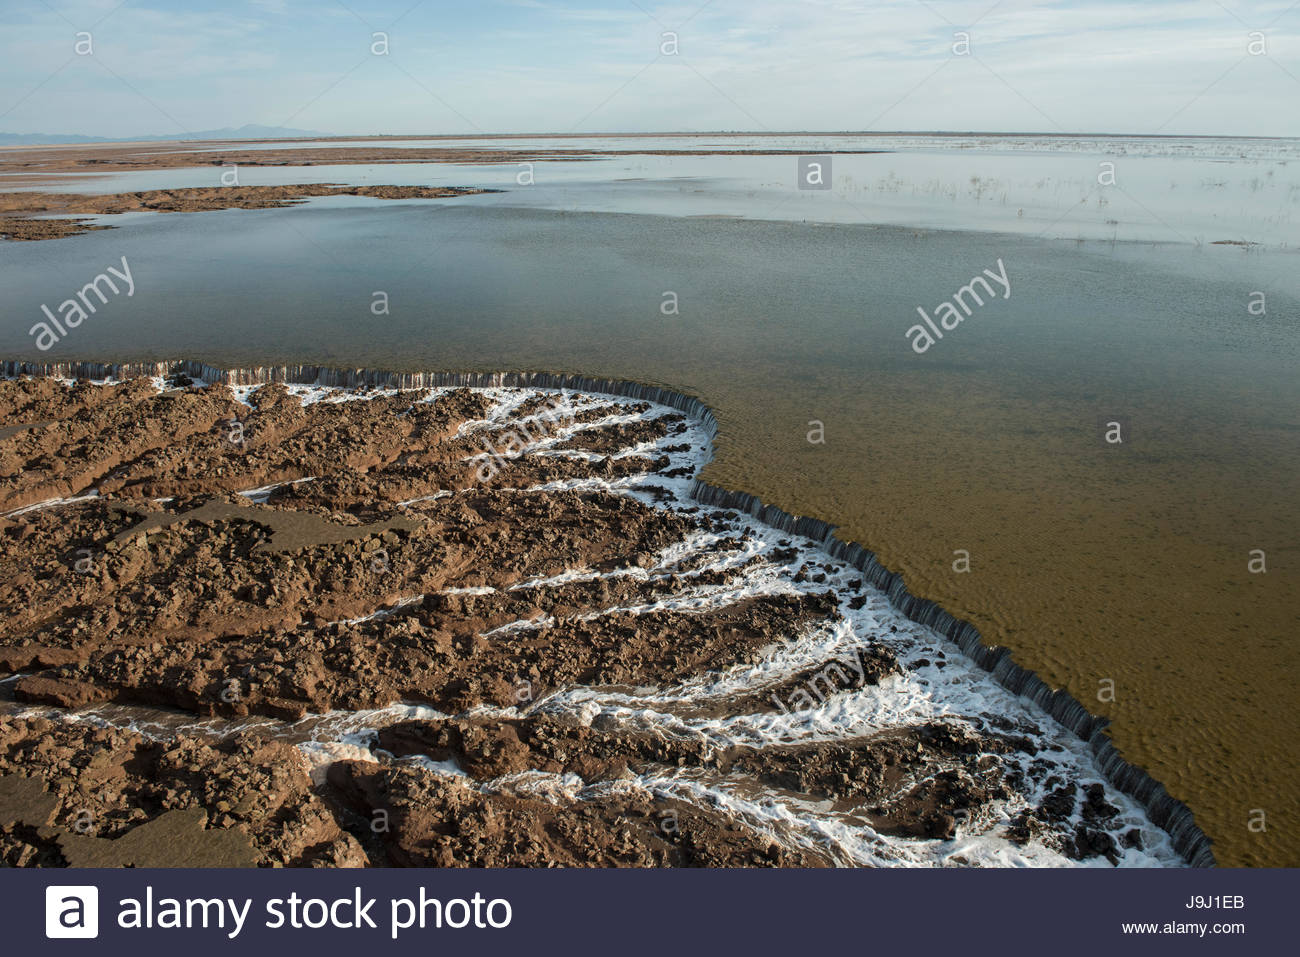 Ocean high tide waters downcutting tidal flat sand on the way back to the Sea of Cortez. - Stock Image